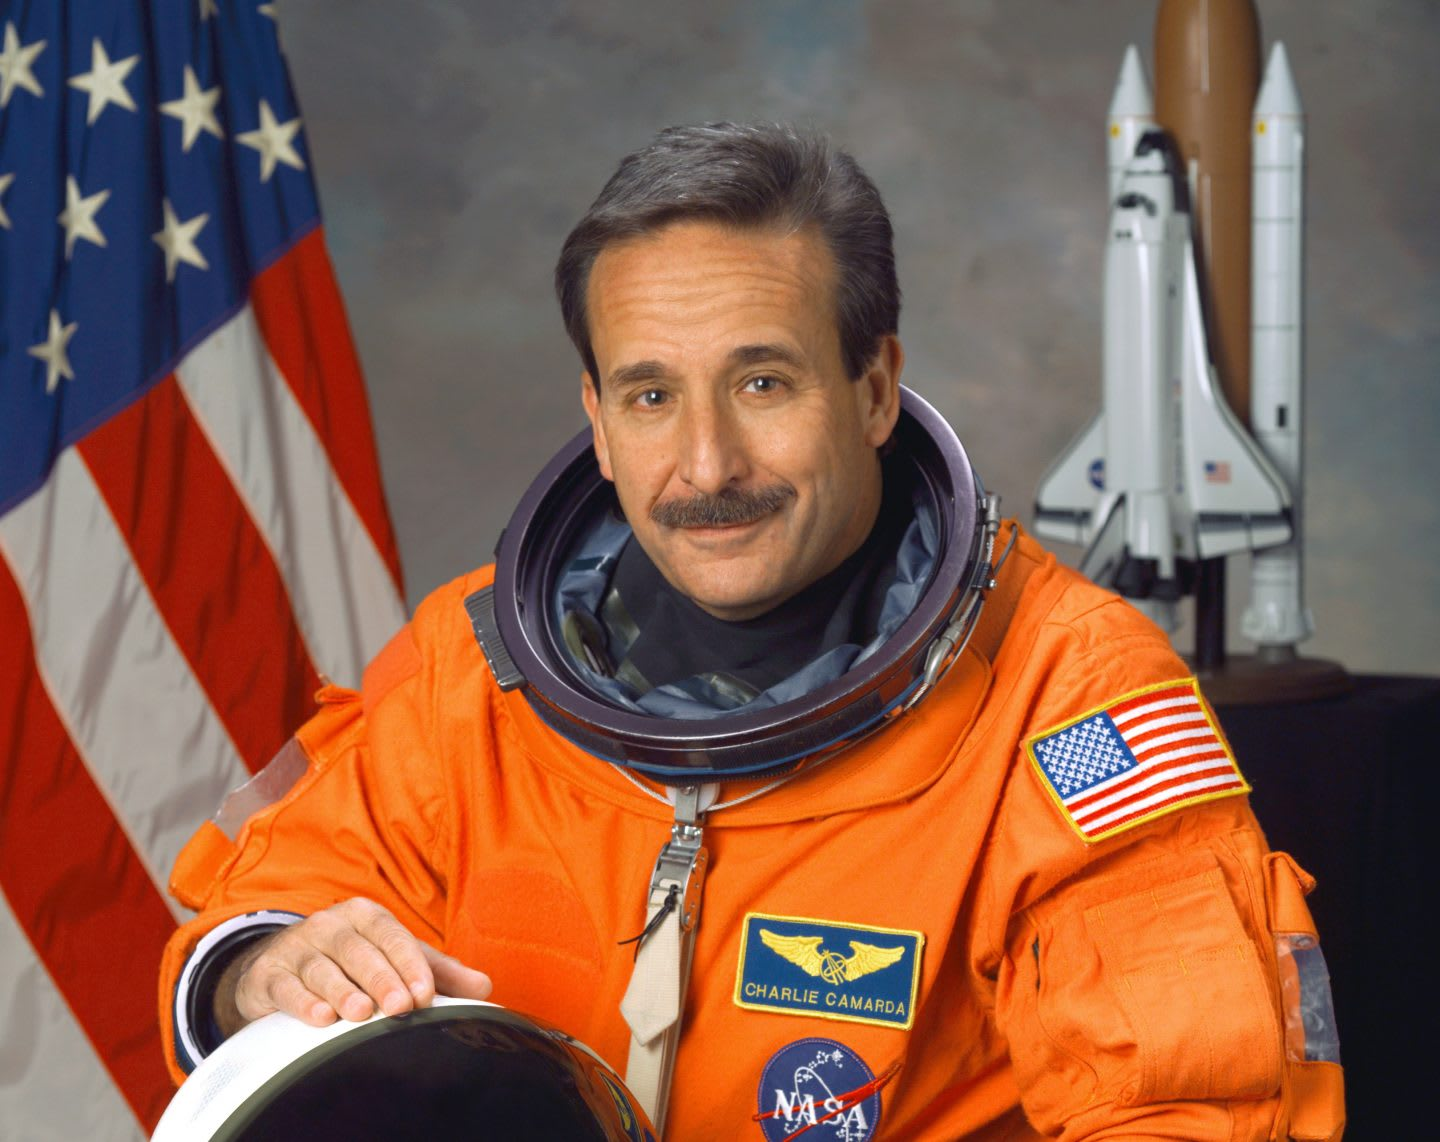 Portrait of Charlie Camarda in his space suit. diversity, innovation, creativity, team work, GamePlanA